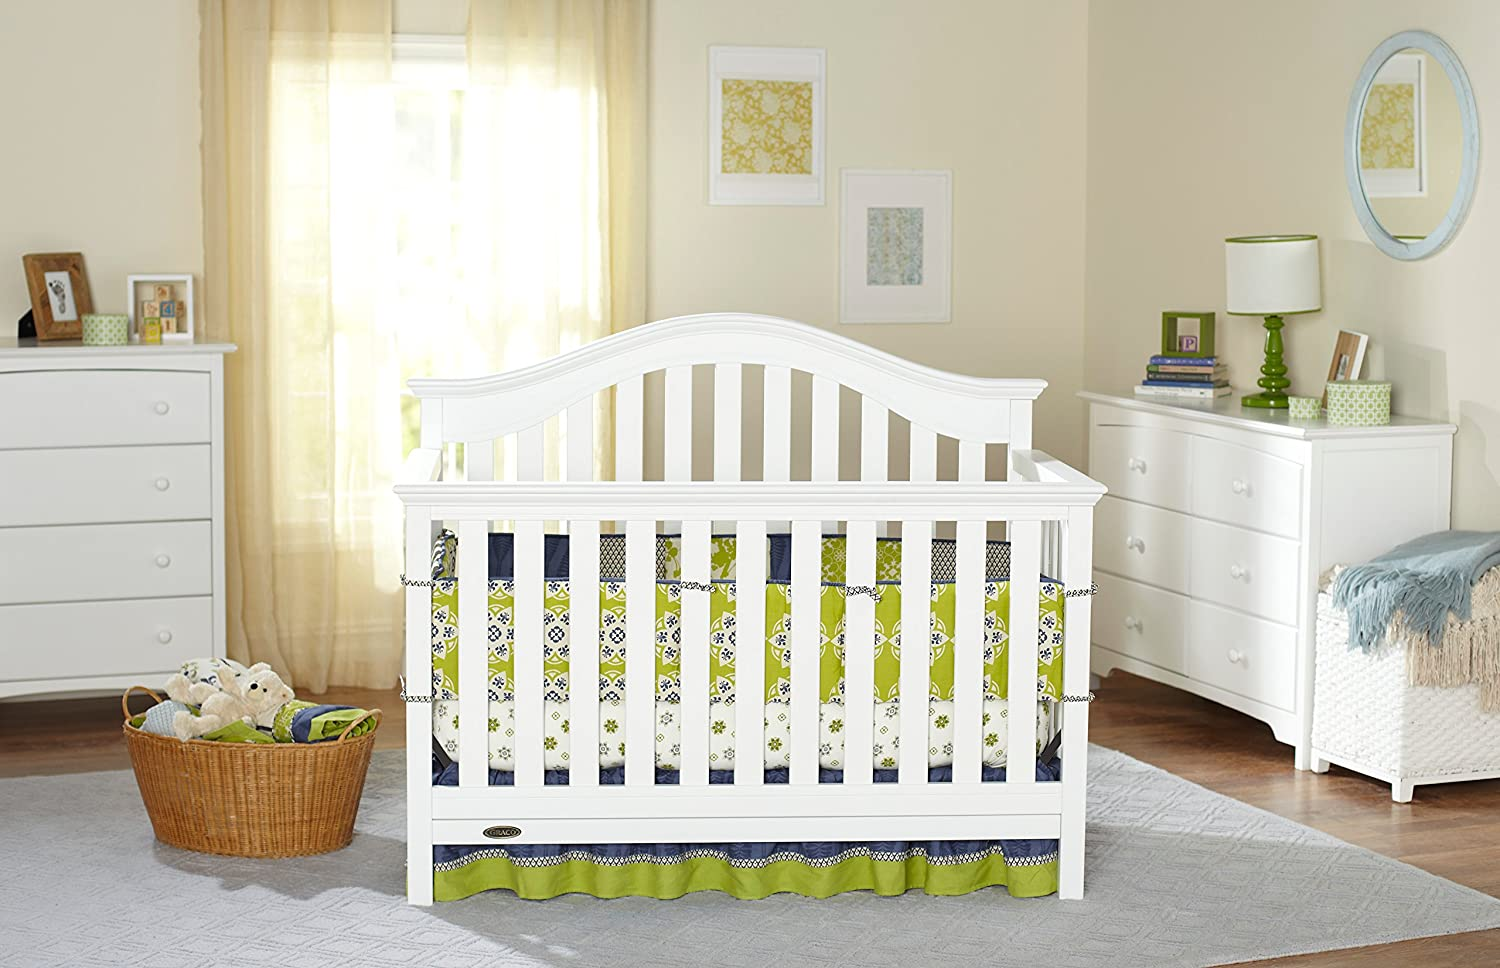 Graco Bryson 4-in-1 Convertible Crib, White, Easily Converts to Toddler Bed Day Bed or Full Bed, Three Position Adjustable Height Mattress, Some Assembly Required Mattress Not Included